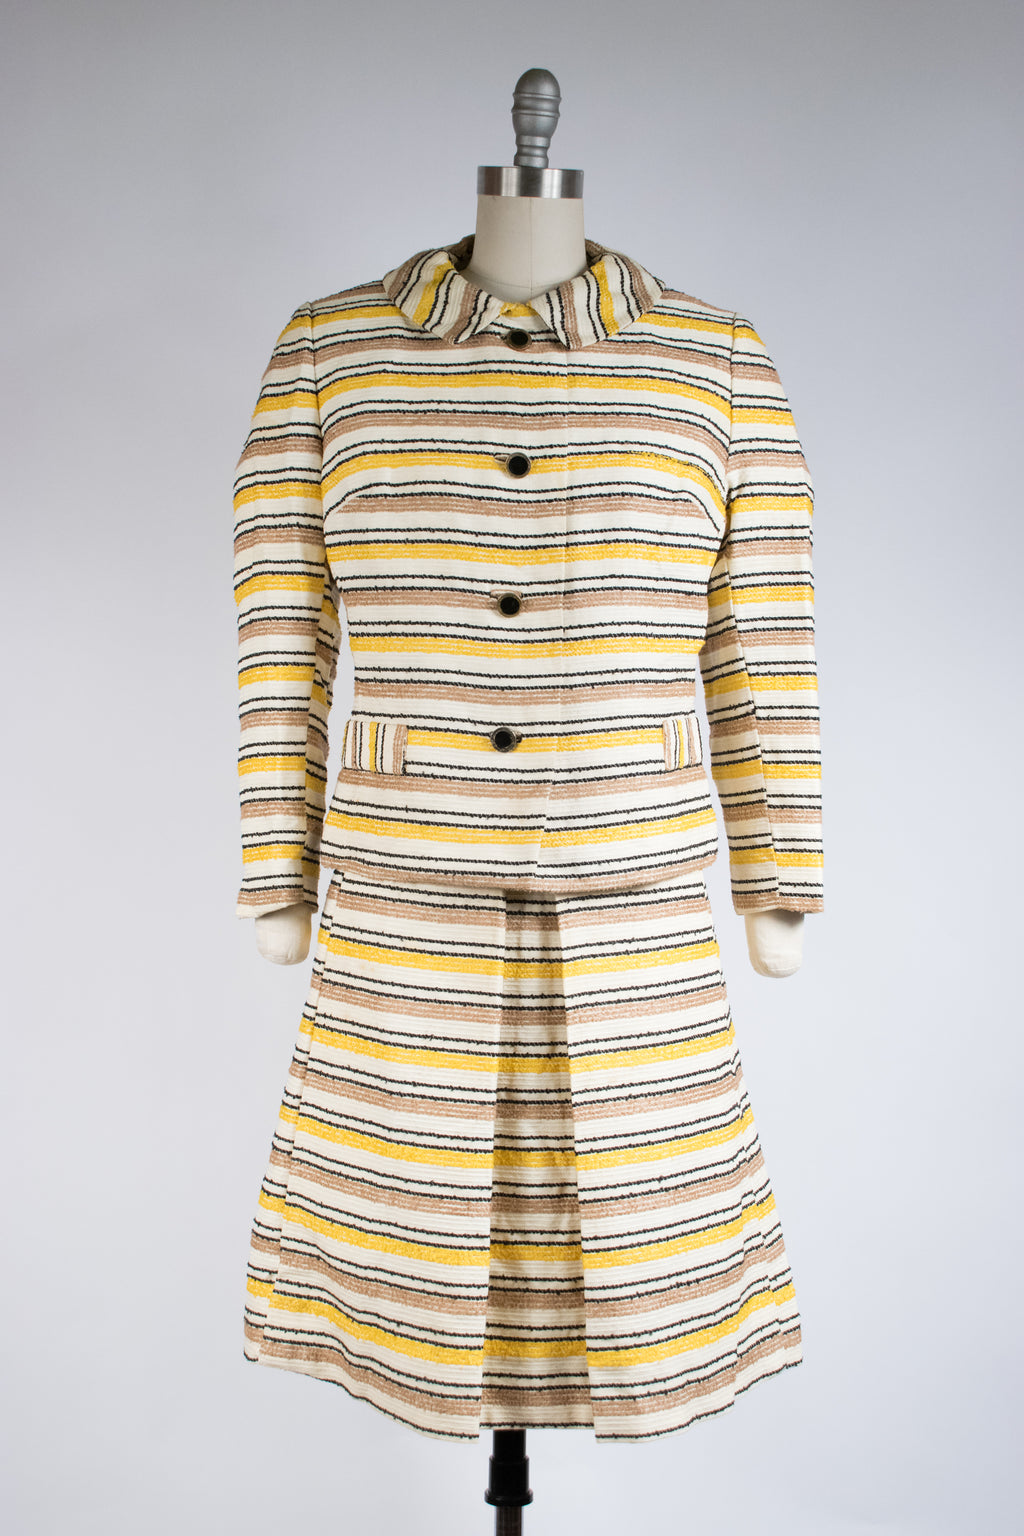 Textural 1960s Two Piece Dress and Jacket Set in Nubby Yellow and Brown Stripes